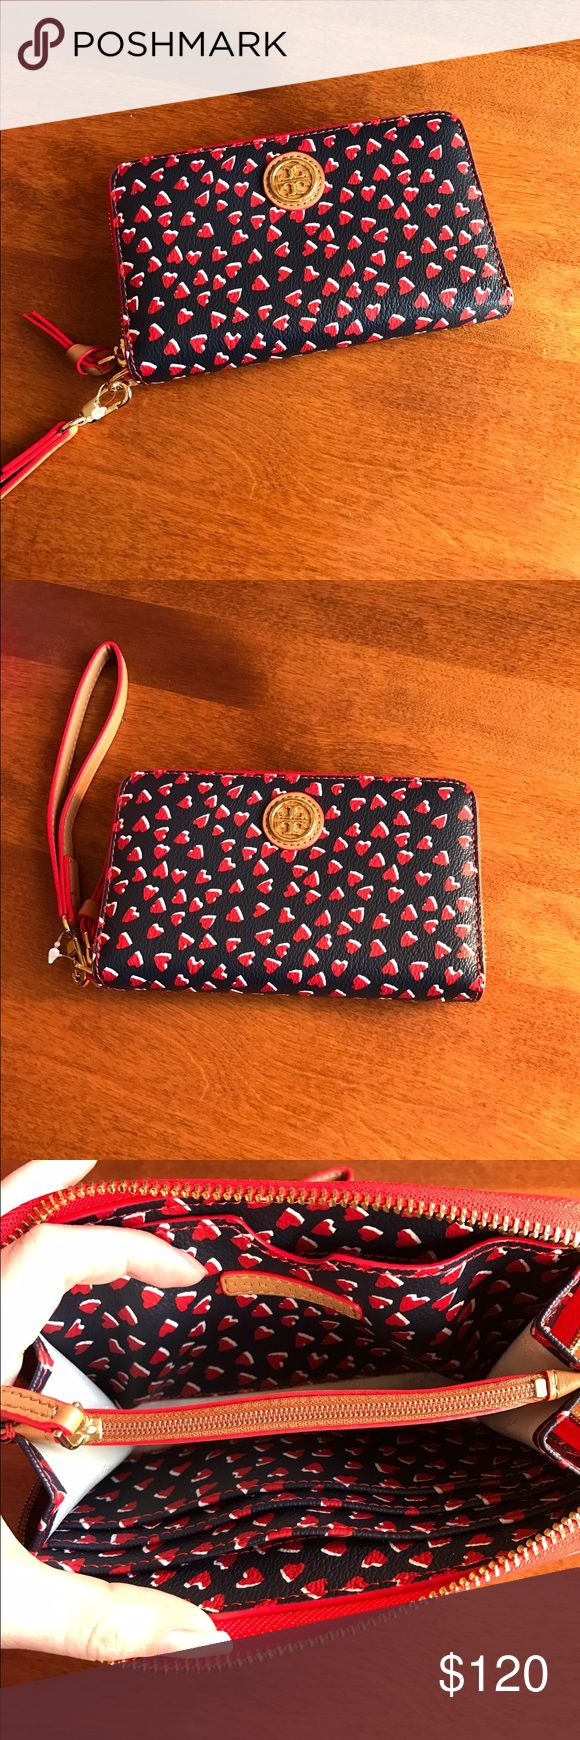 NWT Tory Burch Wristlet NWT Tory Burch Wristlet! Valentine's Day Karrington Smartphone Wristlet! Colors are red white tan and navy! Never used back pocket is stretched for standard iPhone 6 and iPhone 7 size with out case or with thin case! Tory Burch Bags Clutches & Wristlets